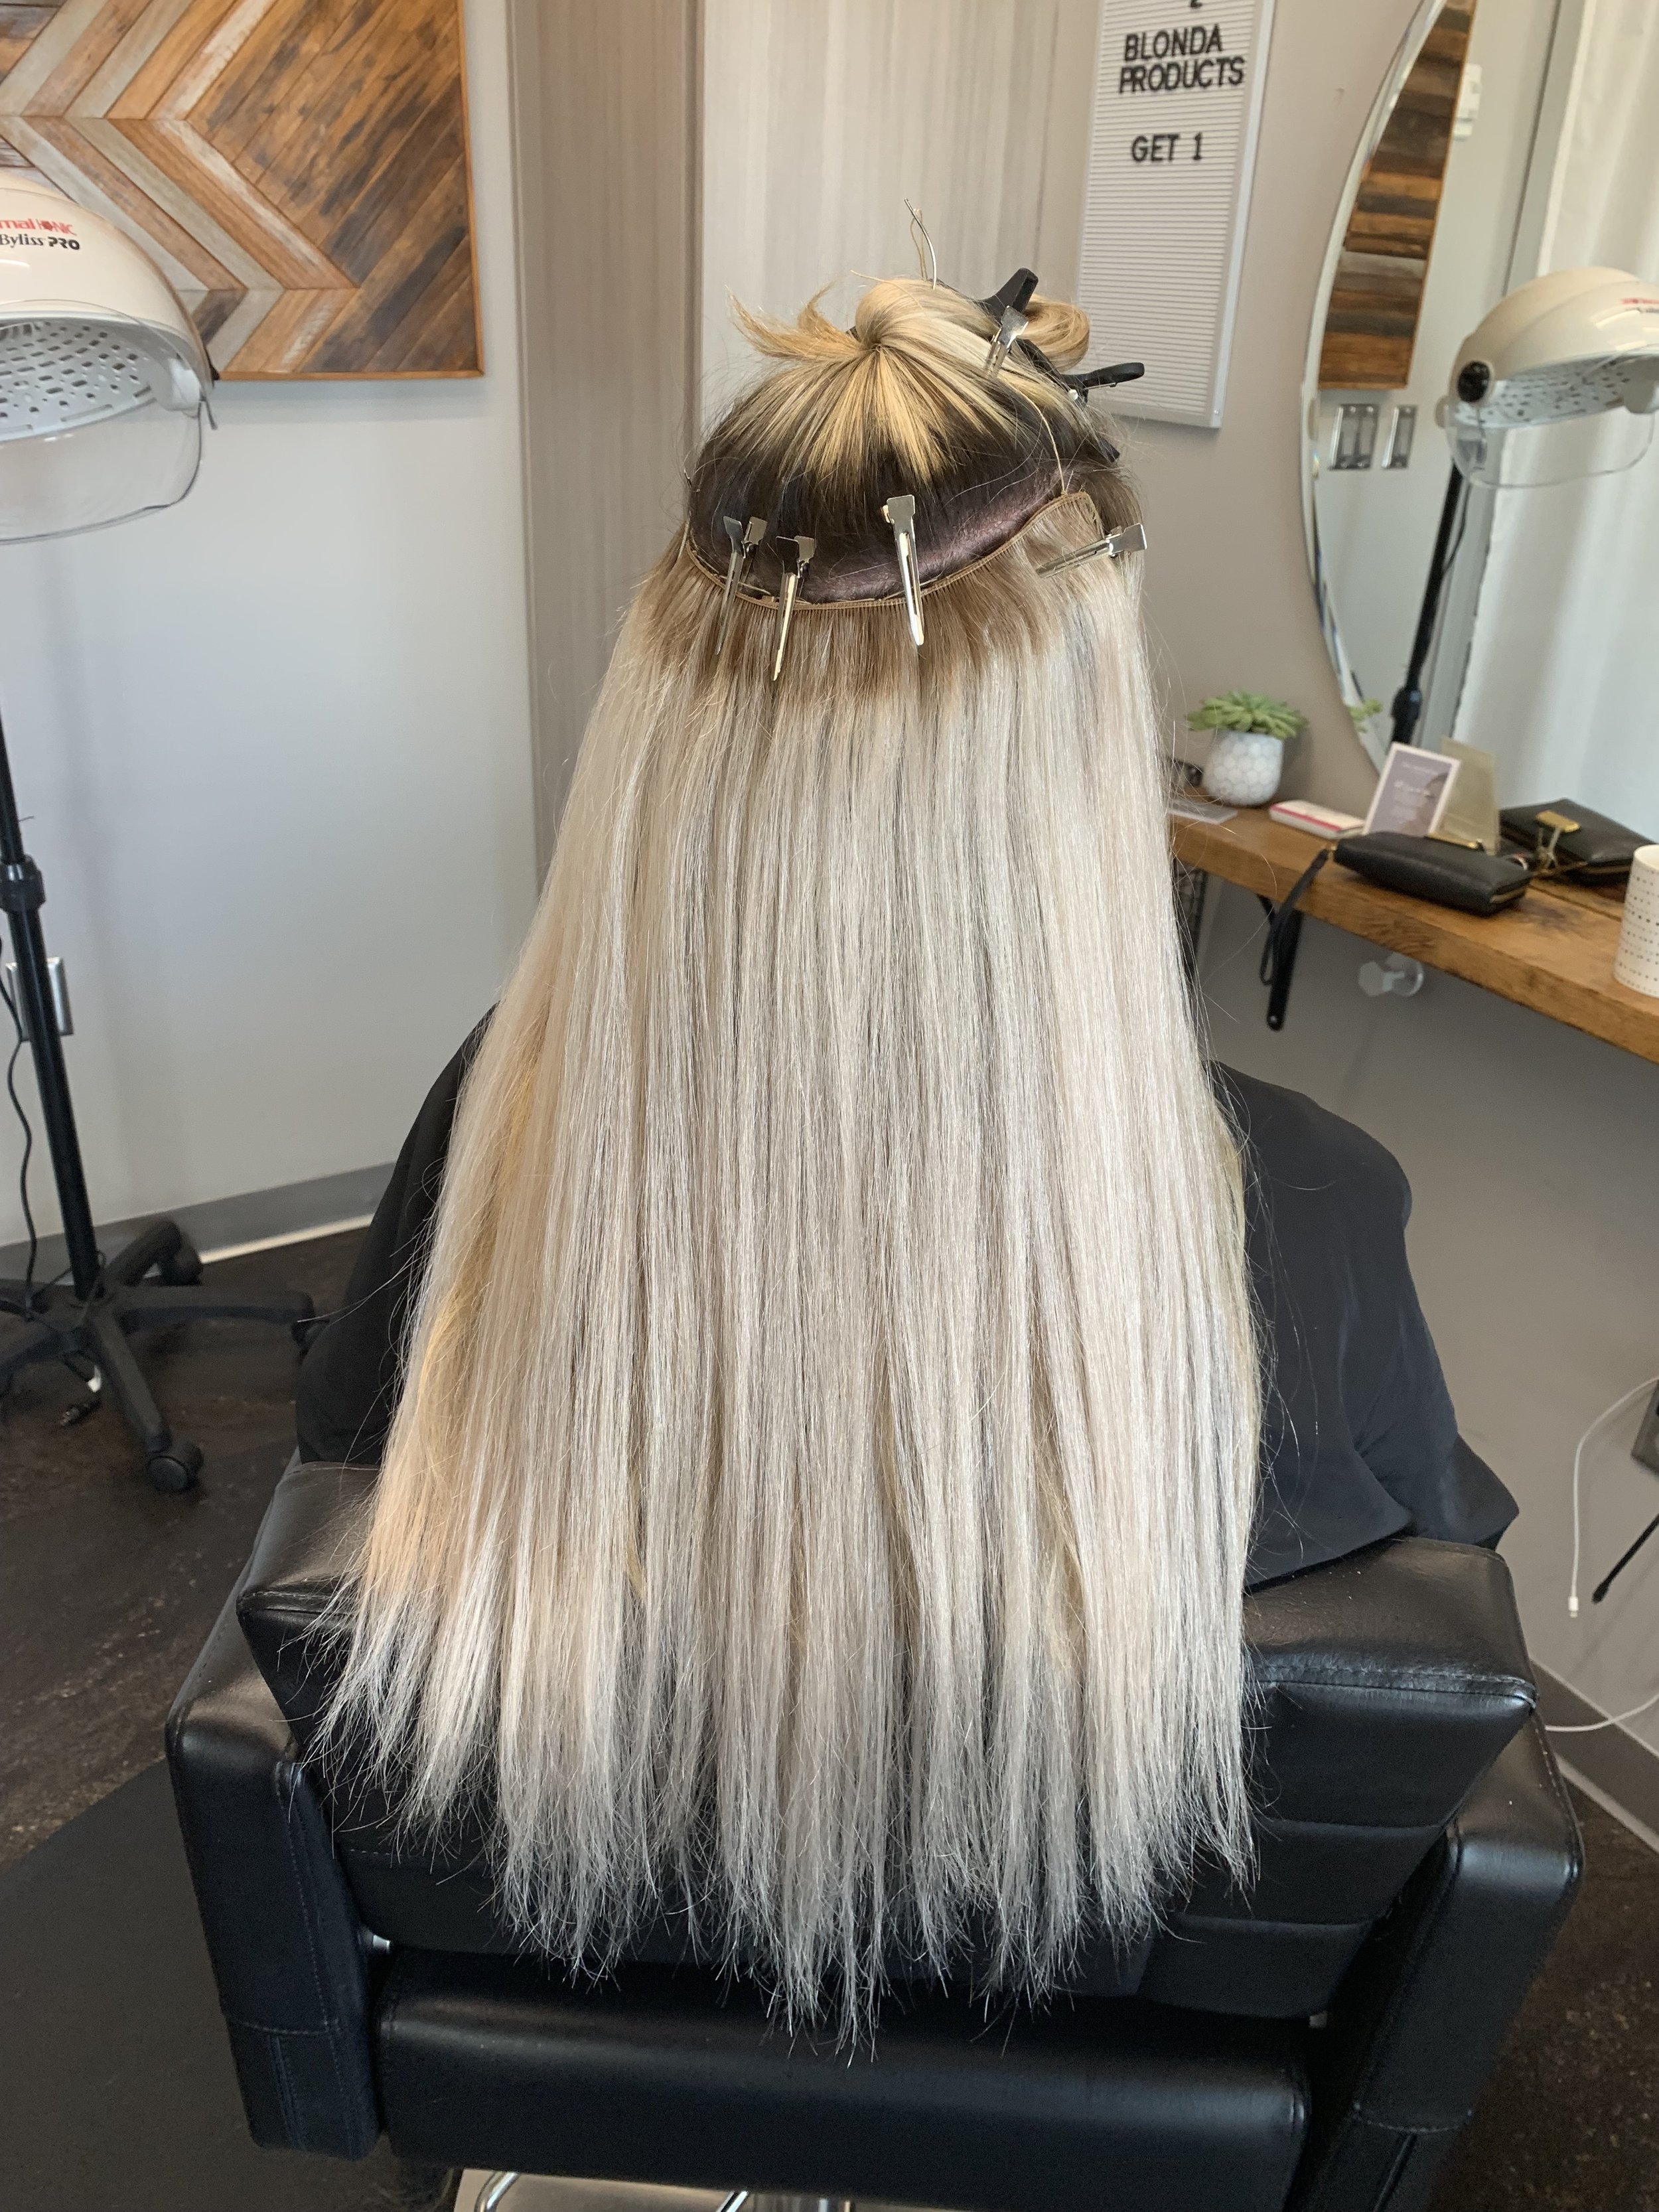 Beaded row hair extensions bohemy salon lake mary florida how to.jpg